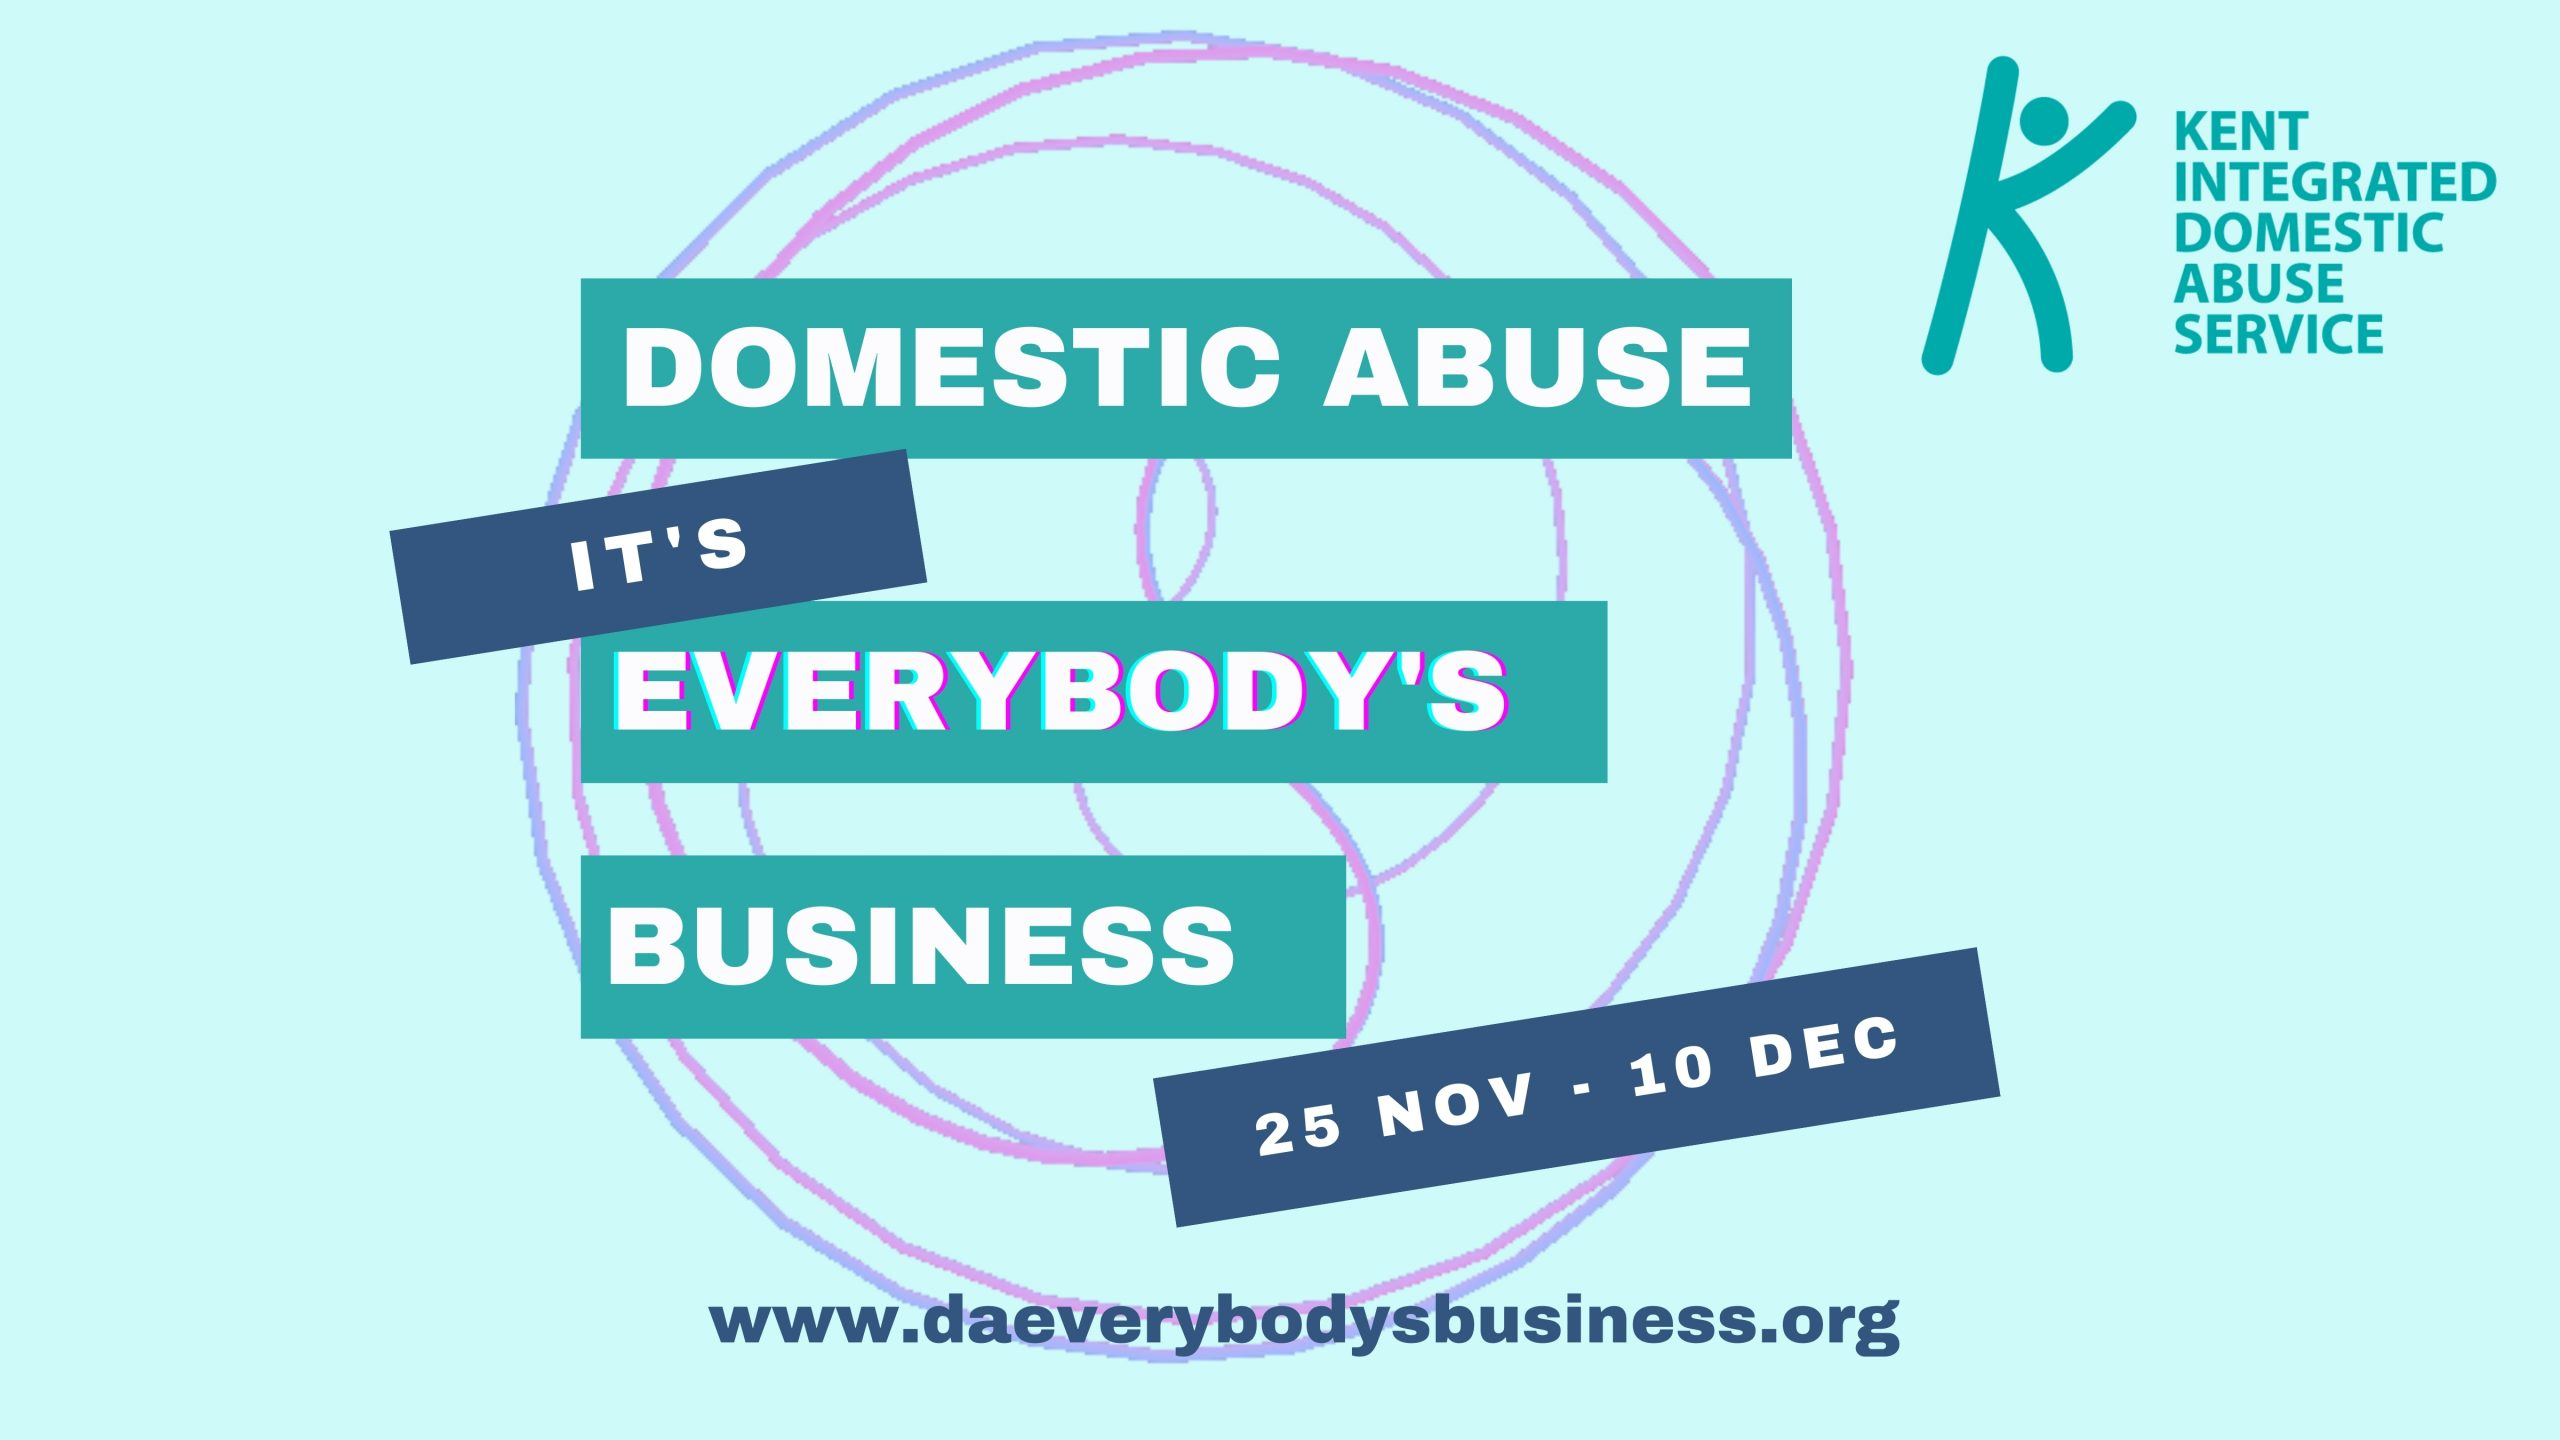 DOMESTIC ABUSE: IT'S EVERYBODY'S BUSINESS